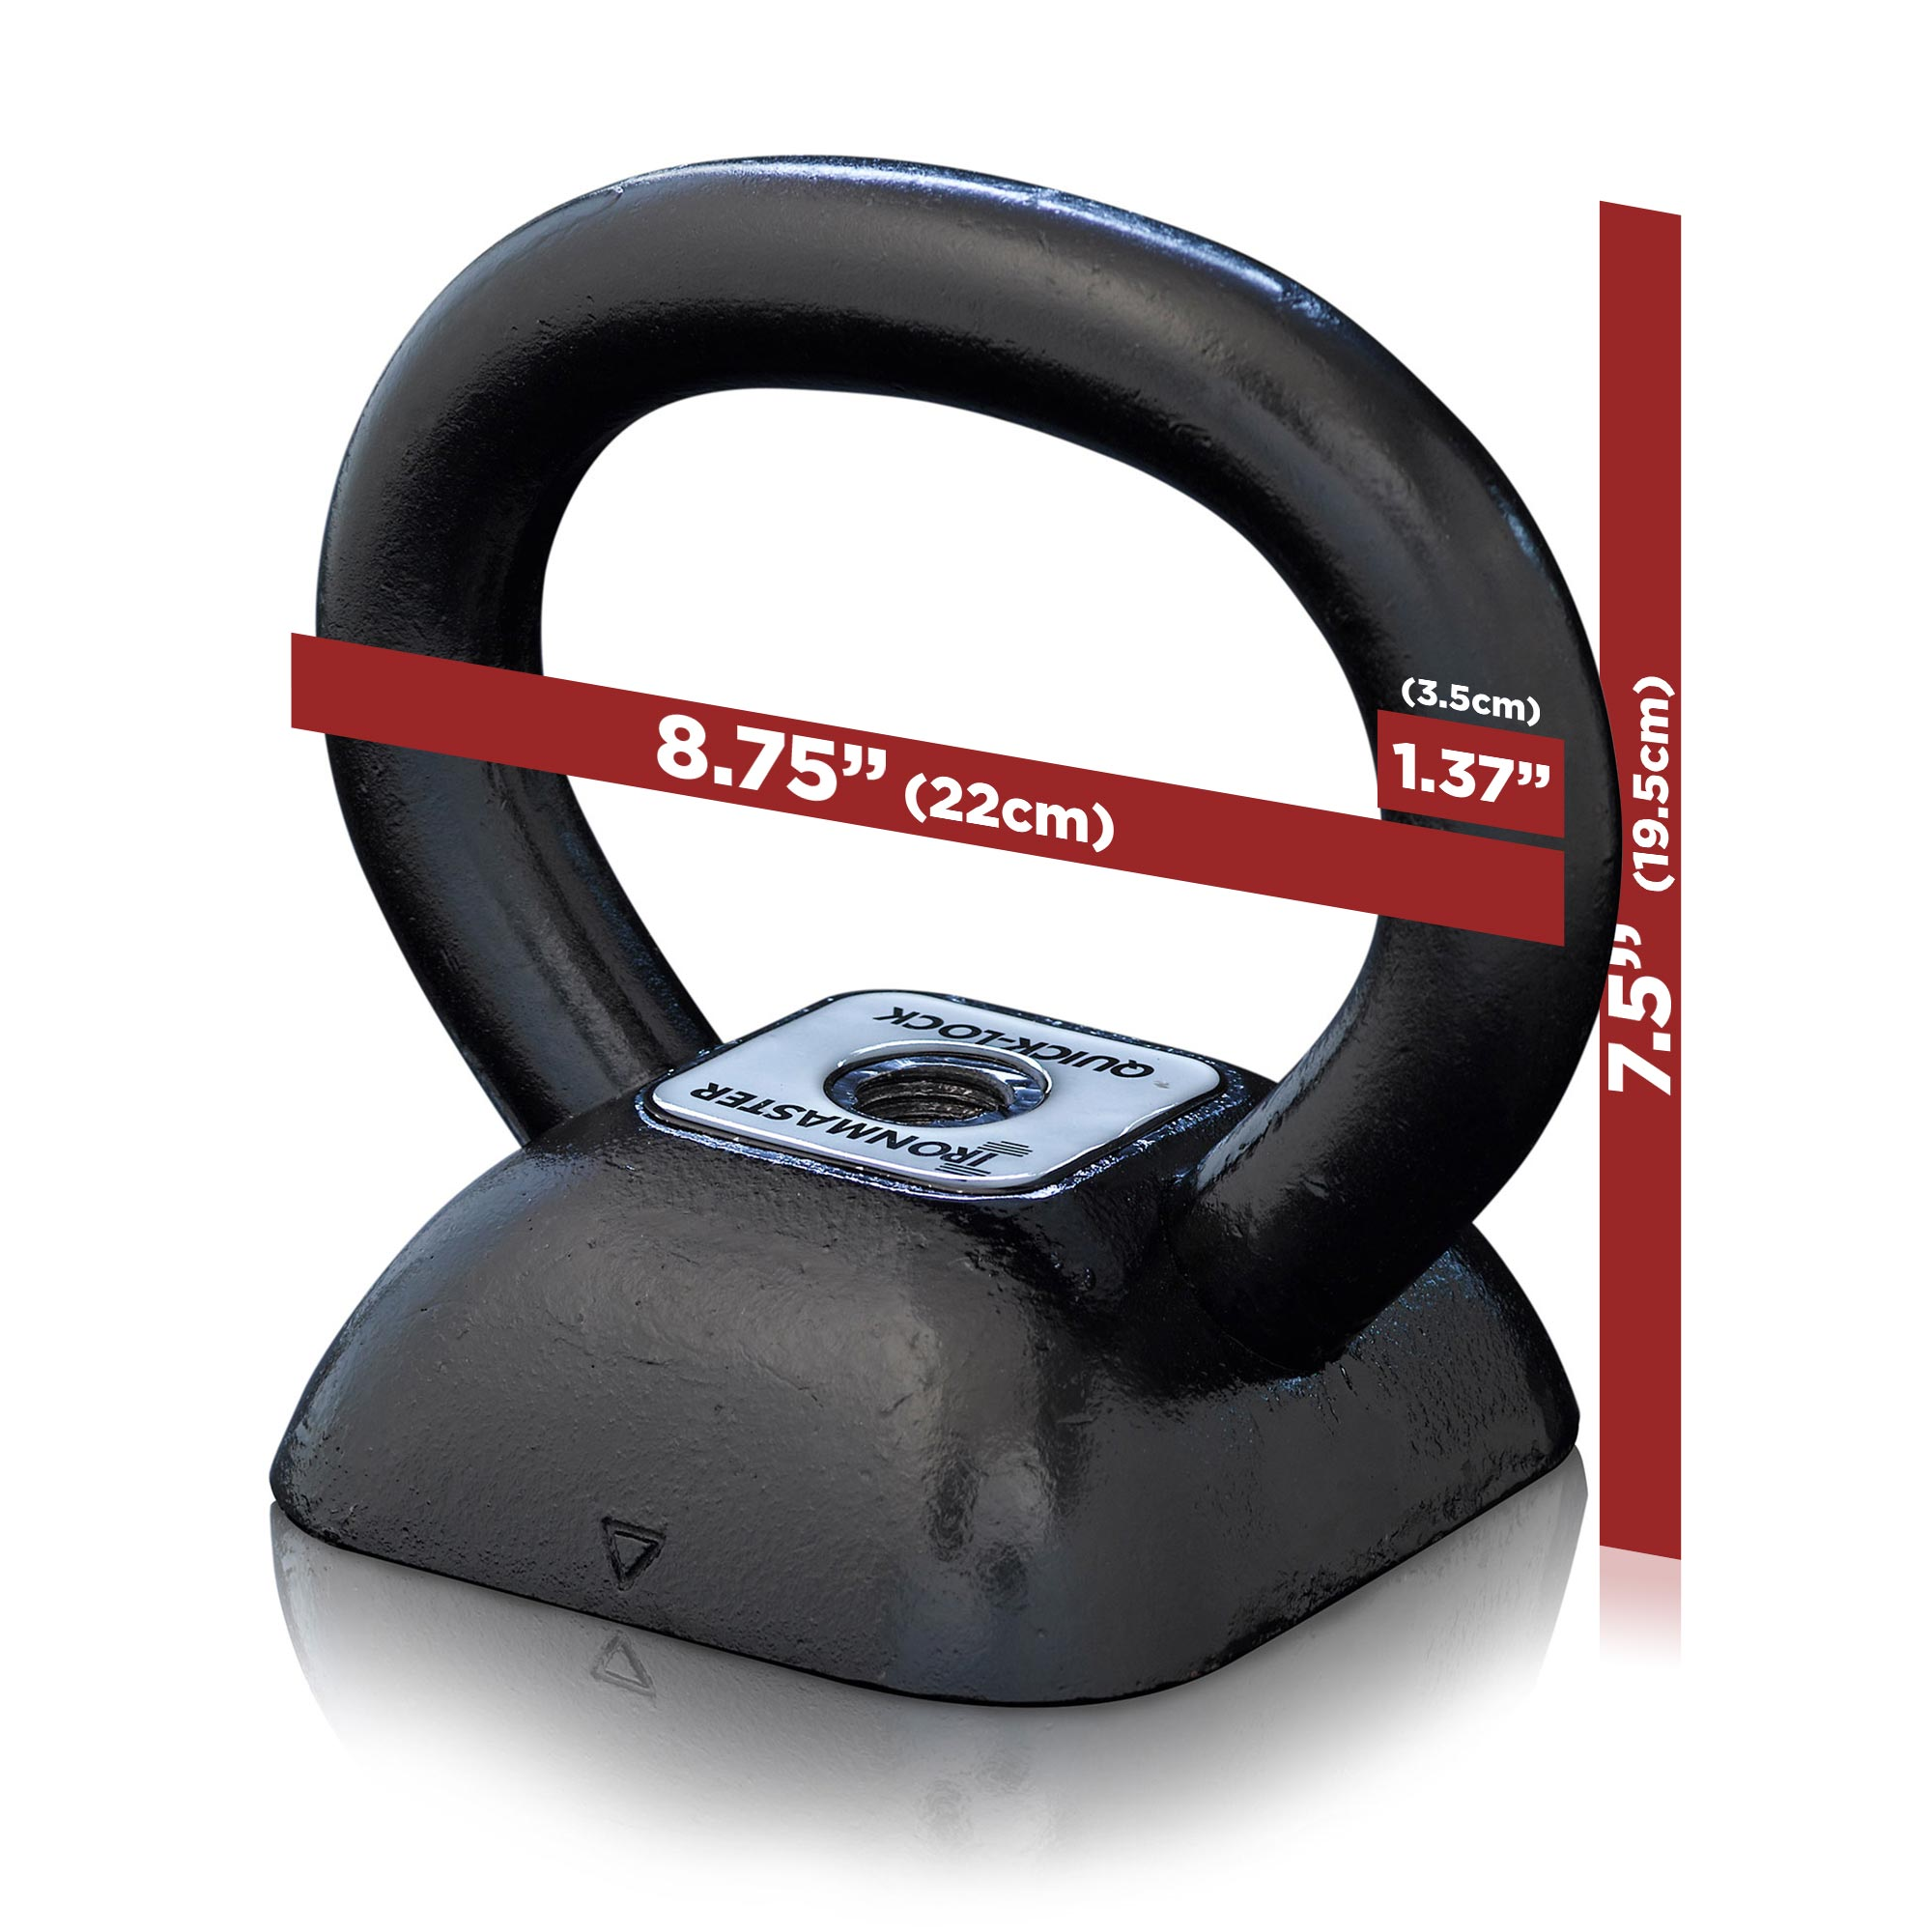 IronmasterUK Kettlebell Specifications